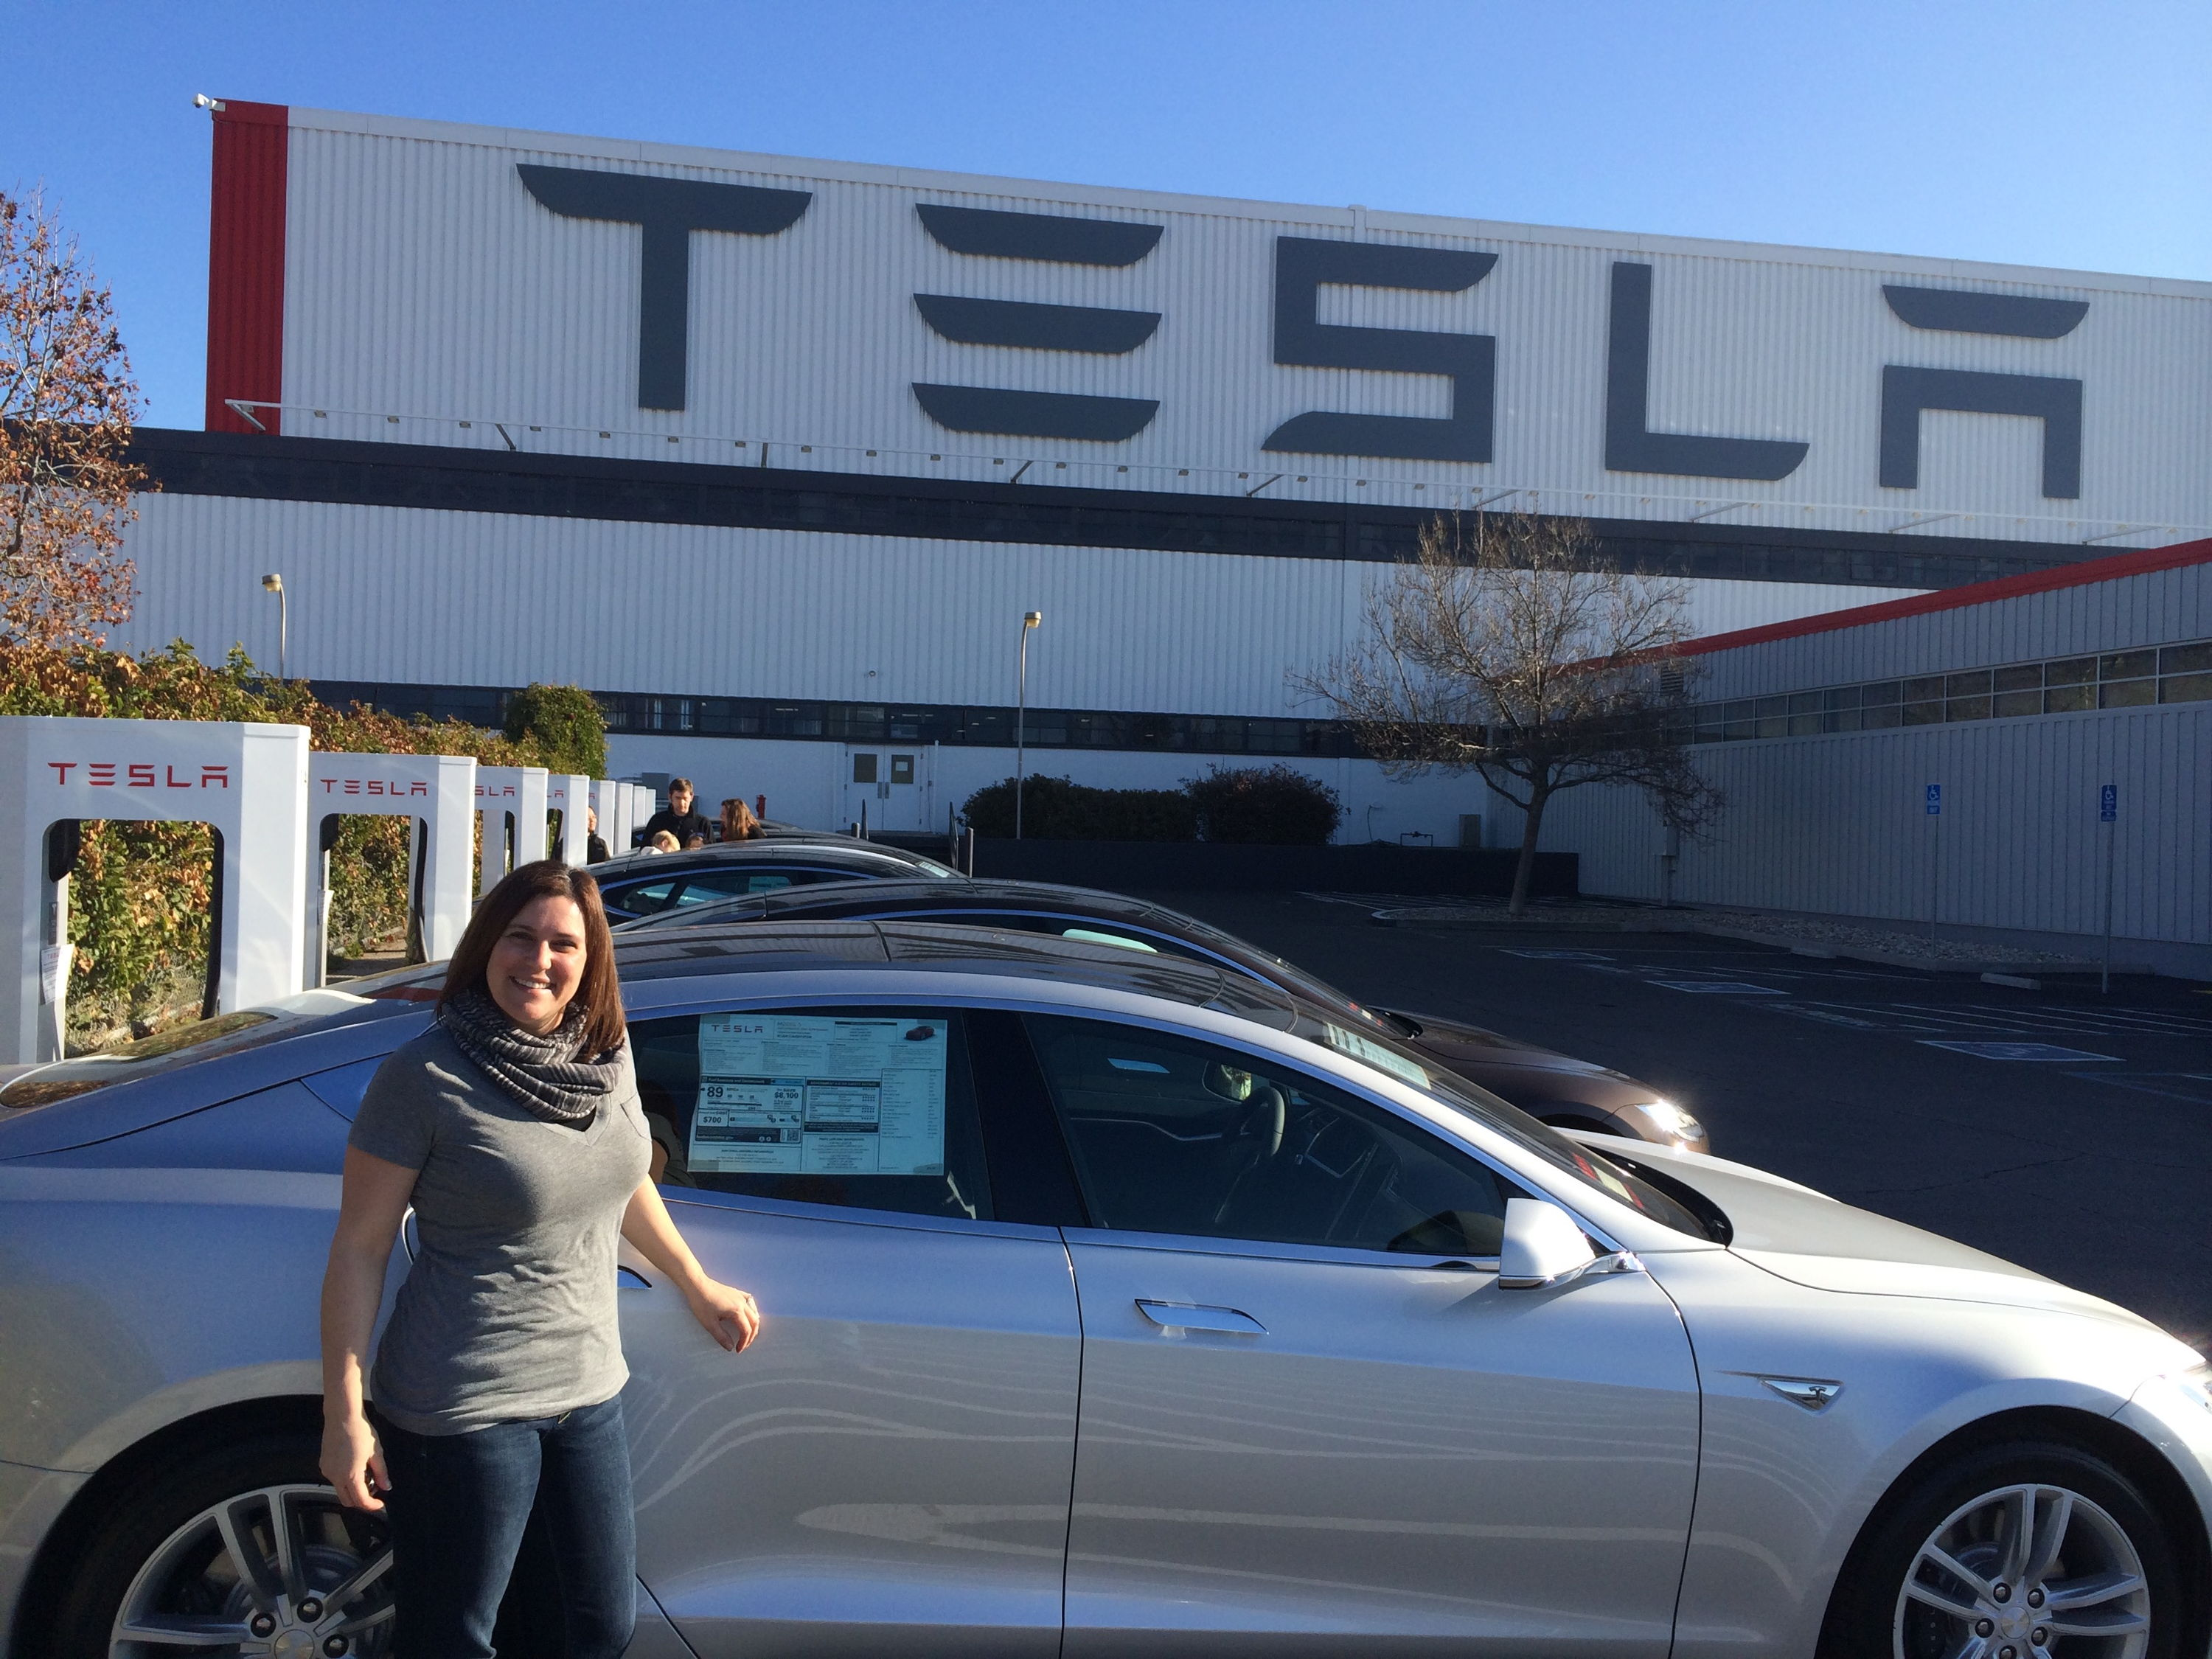 Tesla owners and specialists   Autoskinz